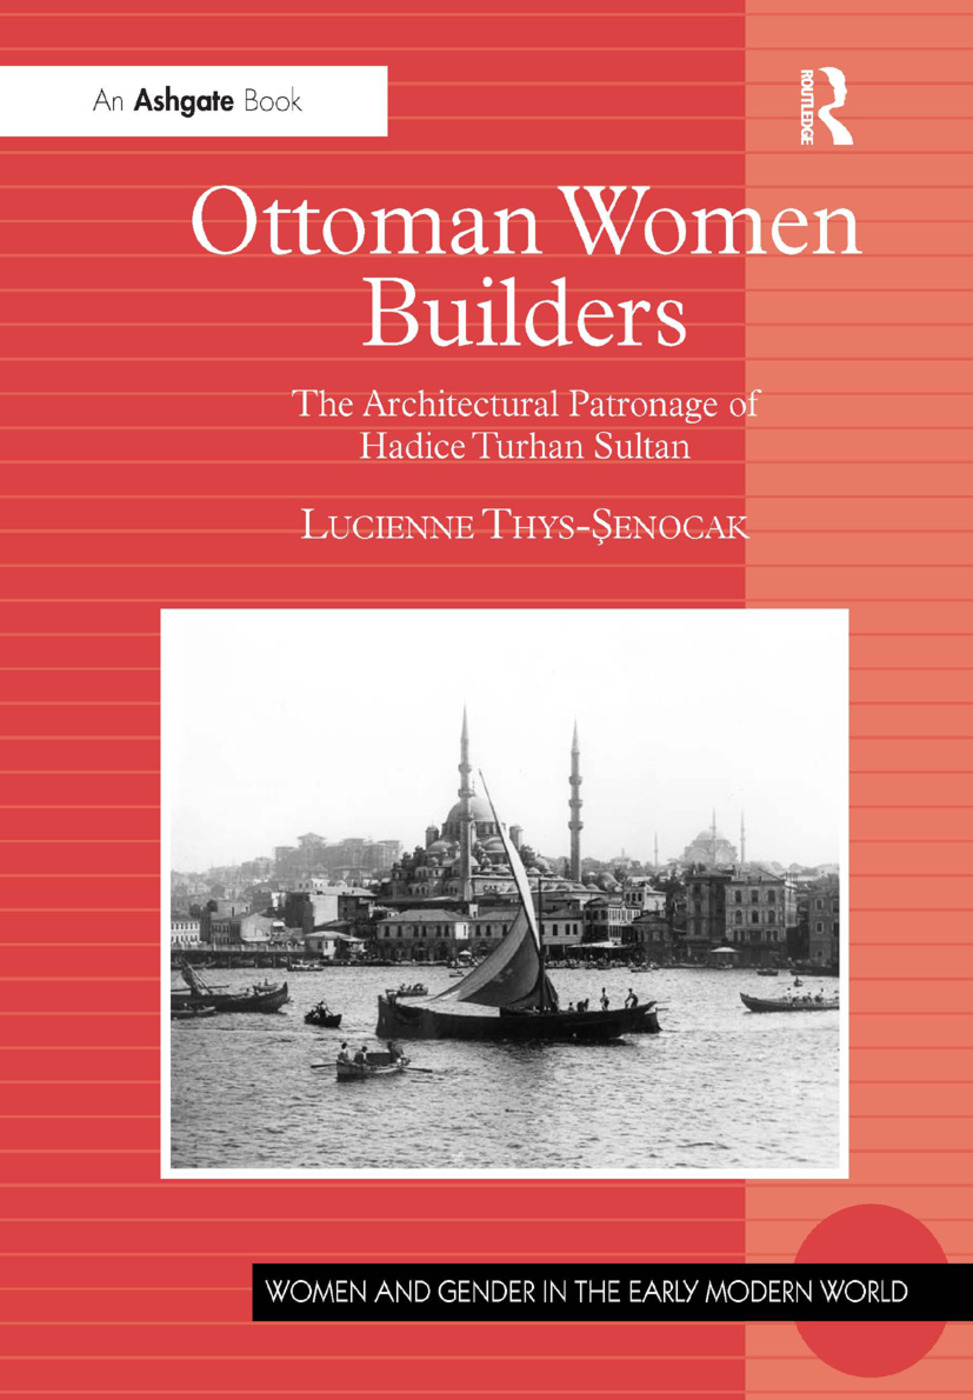 Ottoman Women Builders: The Architectural Patronage of Hadice Turhan Sultan book cover